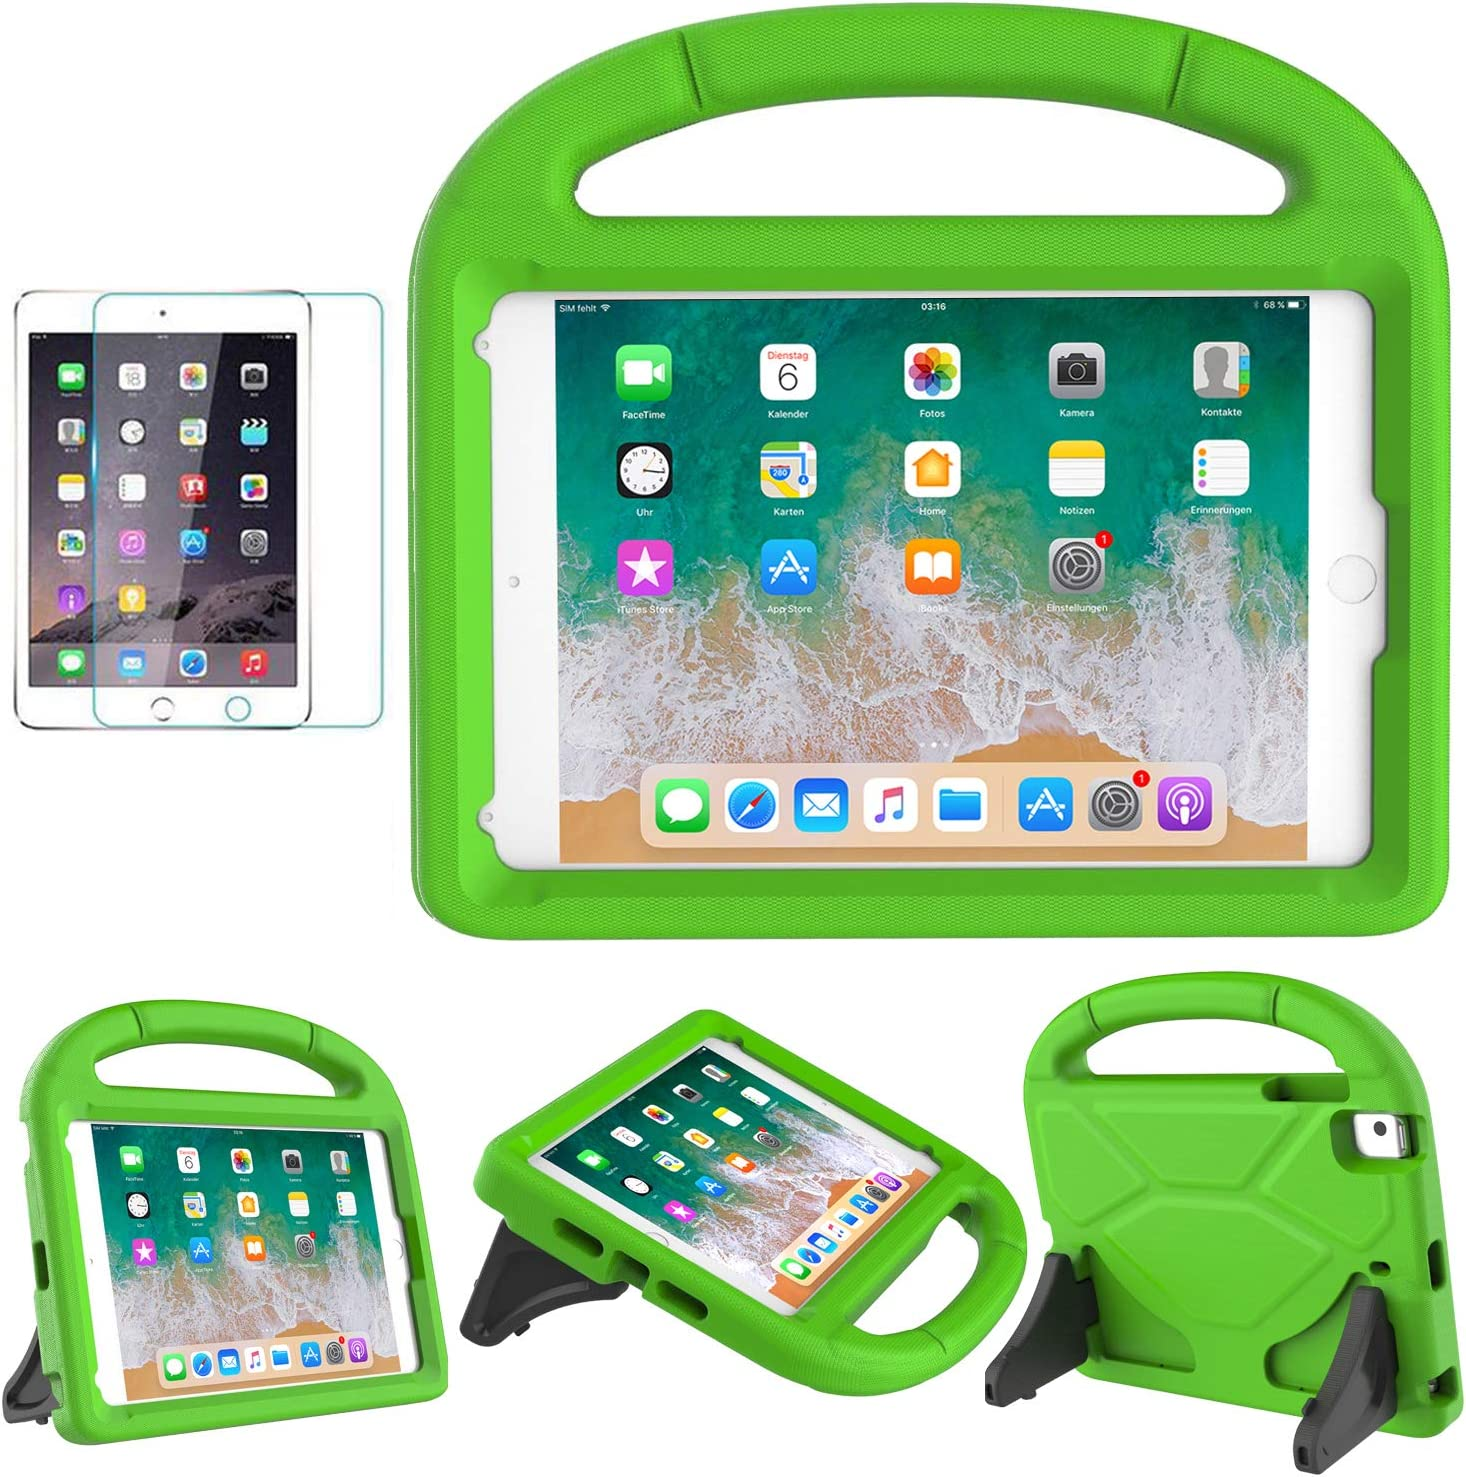 MOXOTEK Kids Case for iPad Mini 5/4/3/2/1, Durable Shockproof Protective Handle Stand Bumper Cover with Screen Protector for Apple 7.9-inch iPad Mini 5th(2019) 4th 3rd 2nd 1st Generation, Green